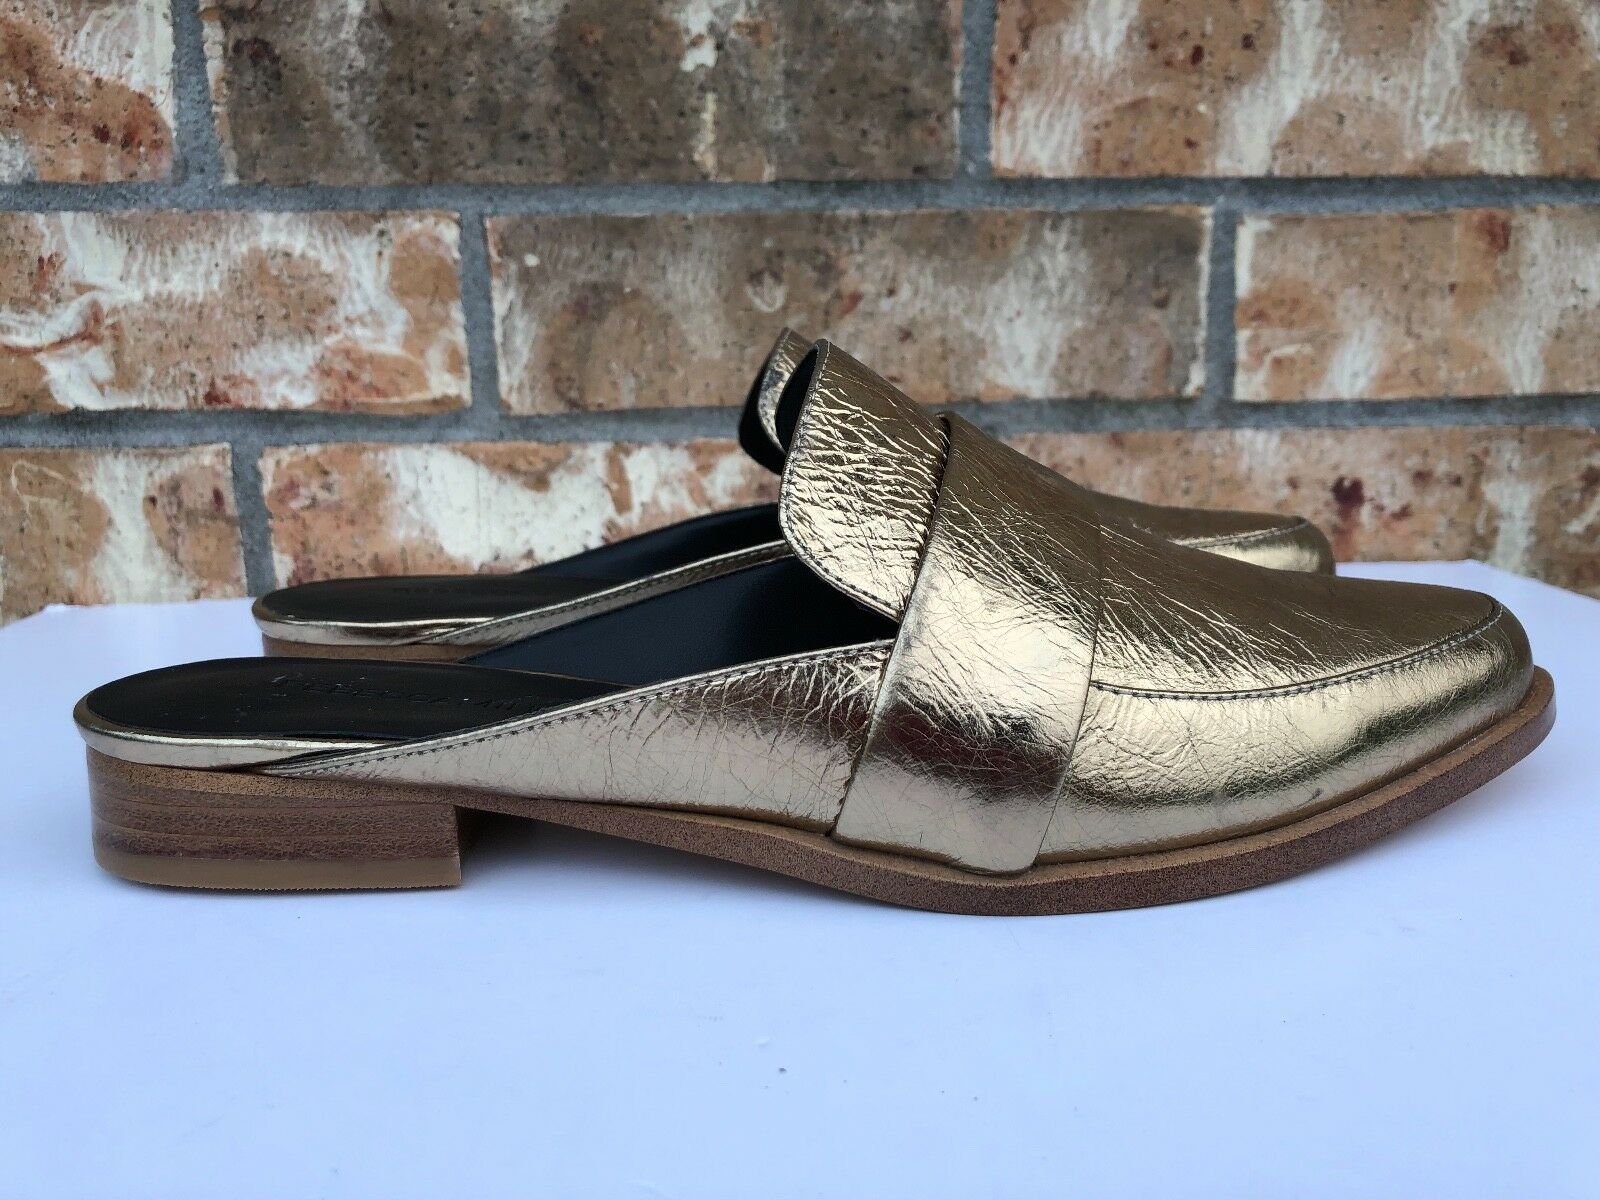 Donna Rebecca Minkoff Mika Metallic Gold Pelle Slip On Mules Slides Loafer Mules On 5babdc